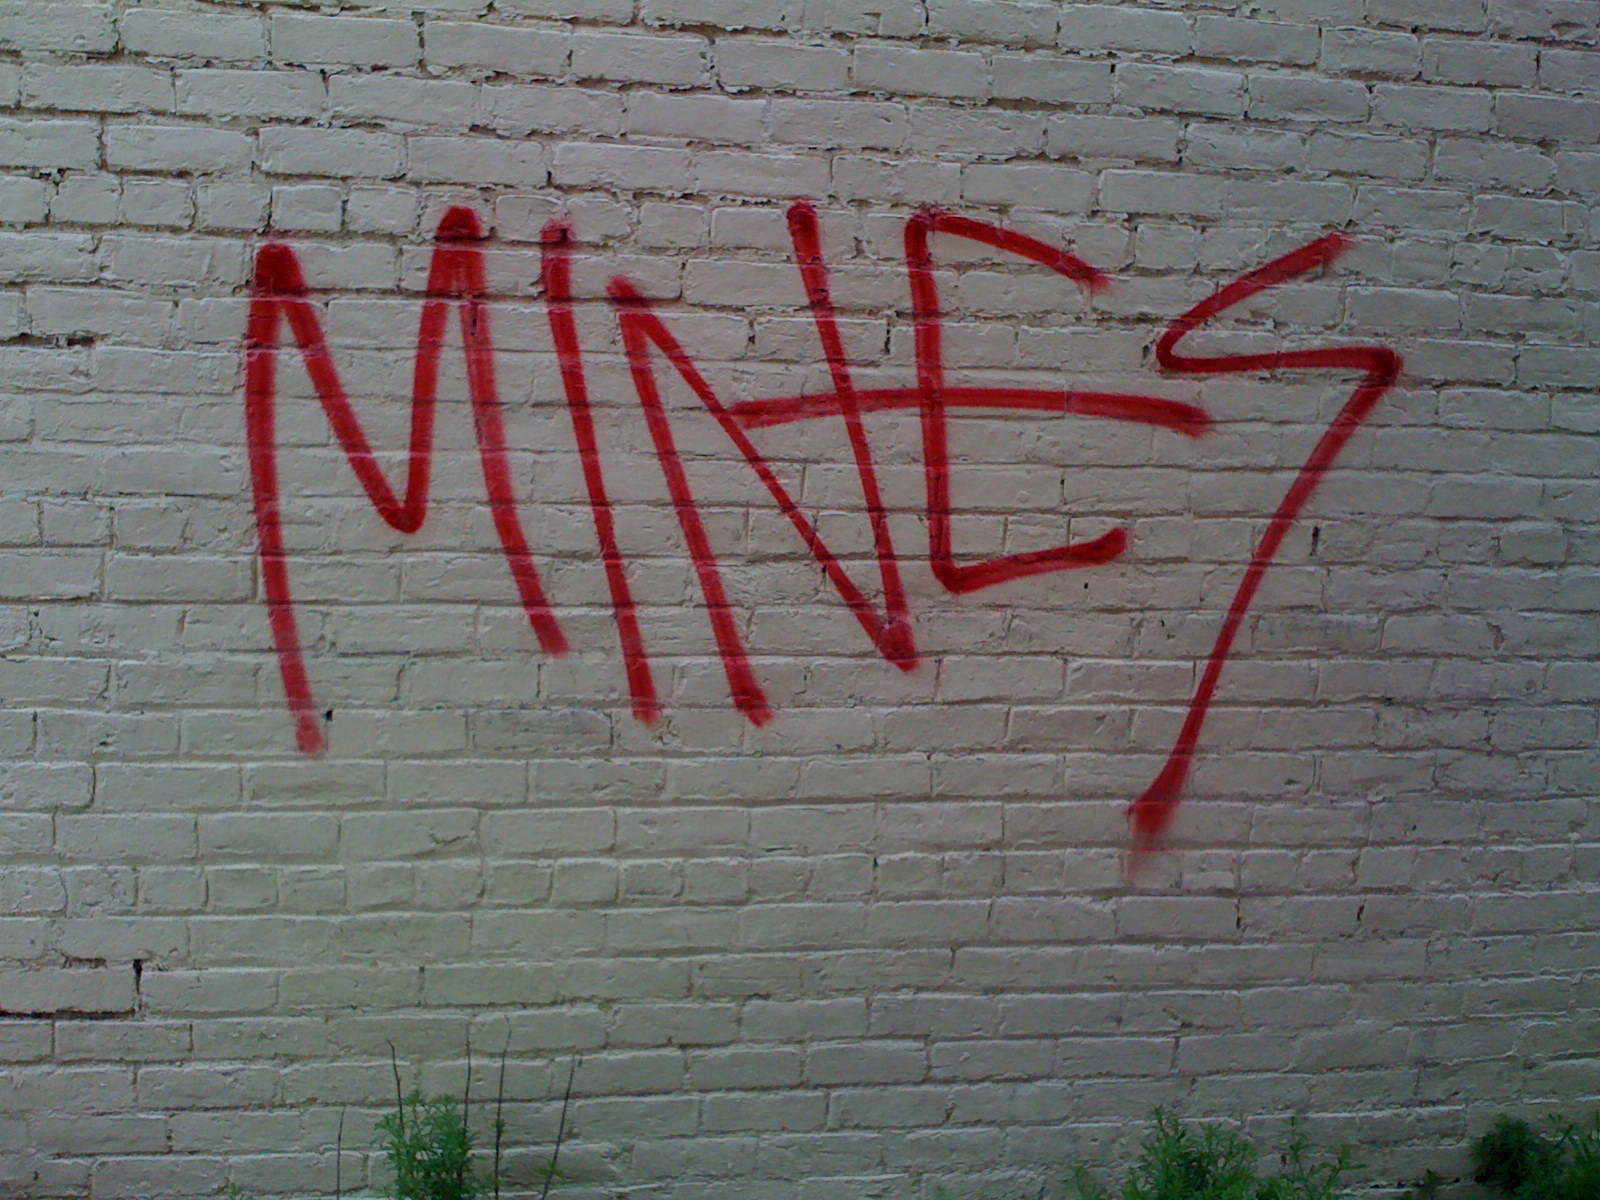 The richmond police are currently investigating the incidents and are seeking reports of any other graffiti from the same weekend